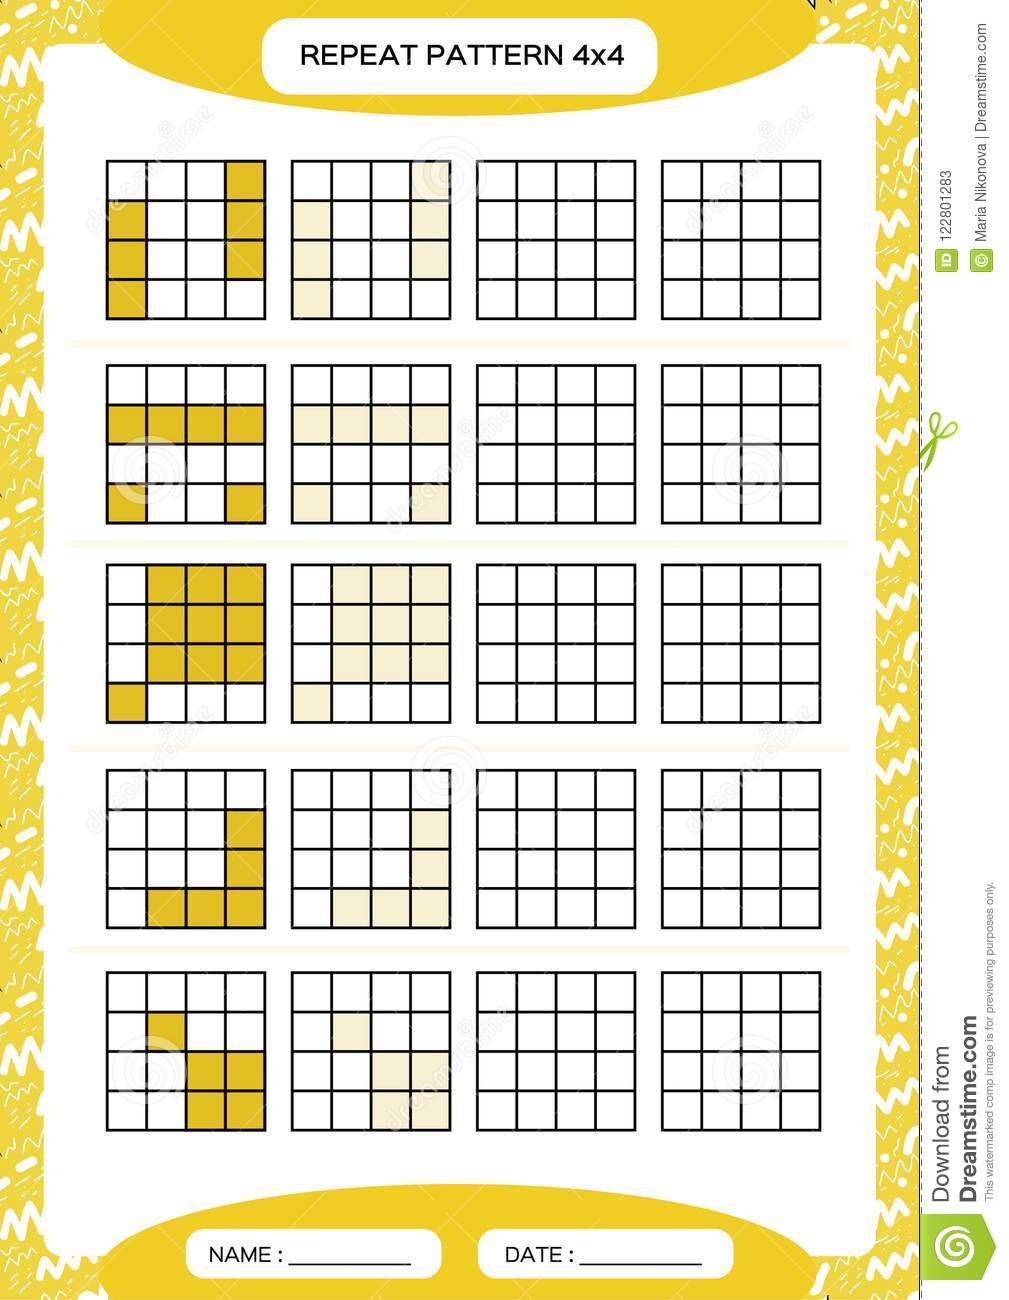 Repeat yellow pattern cube grid with squares special for preschool repeat yellow pattern cube grid with squares special for preschool kids worksheet for ibookread ePUb